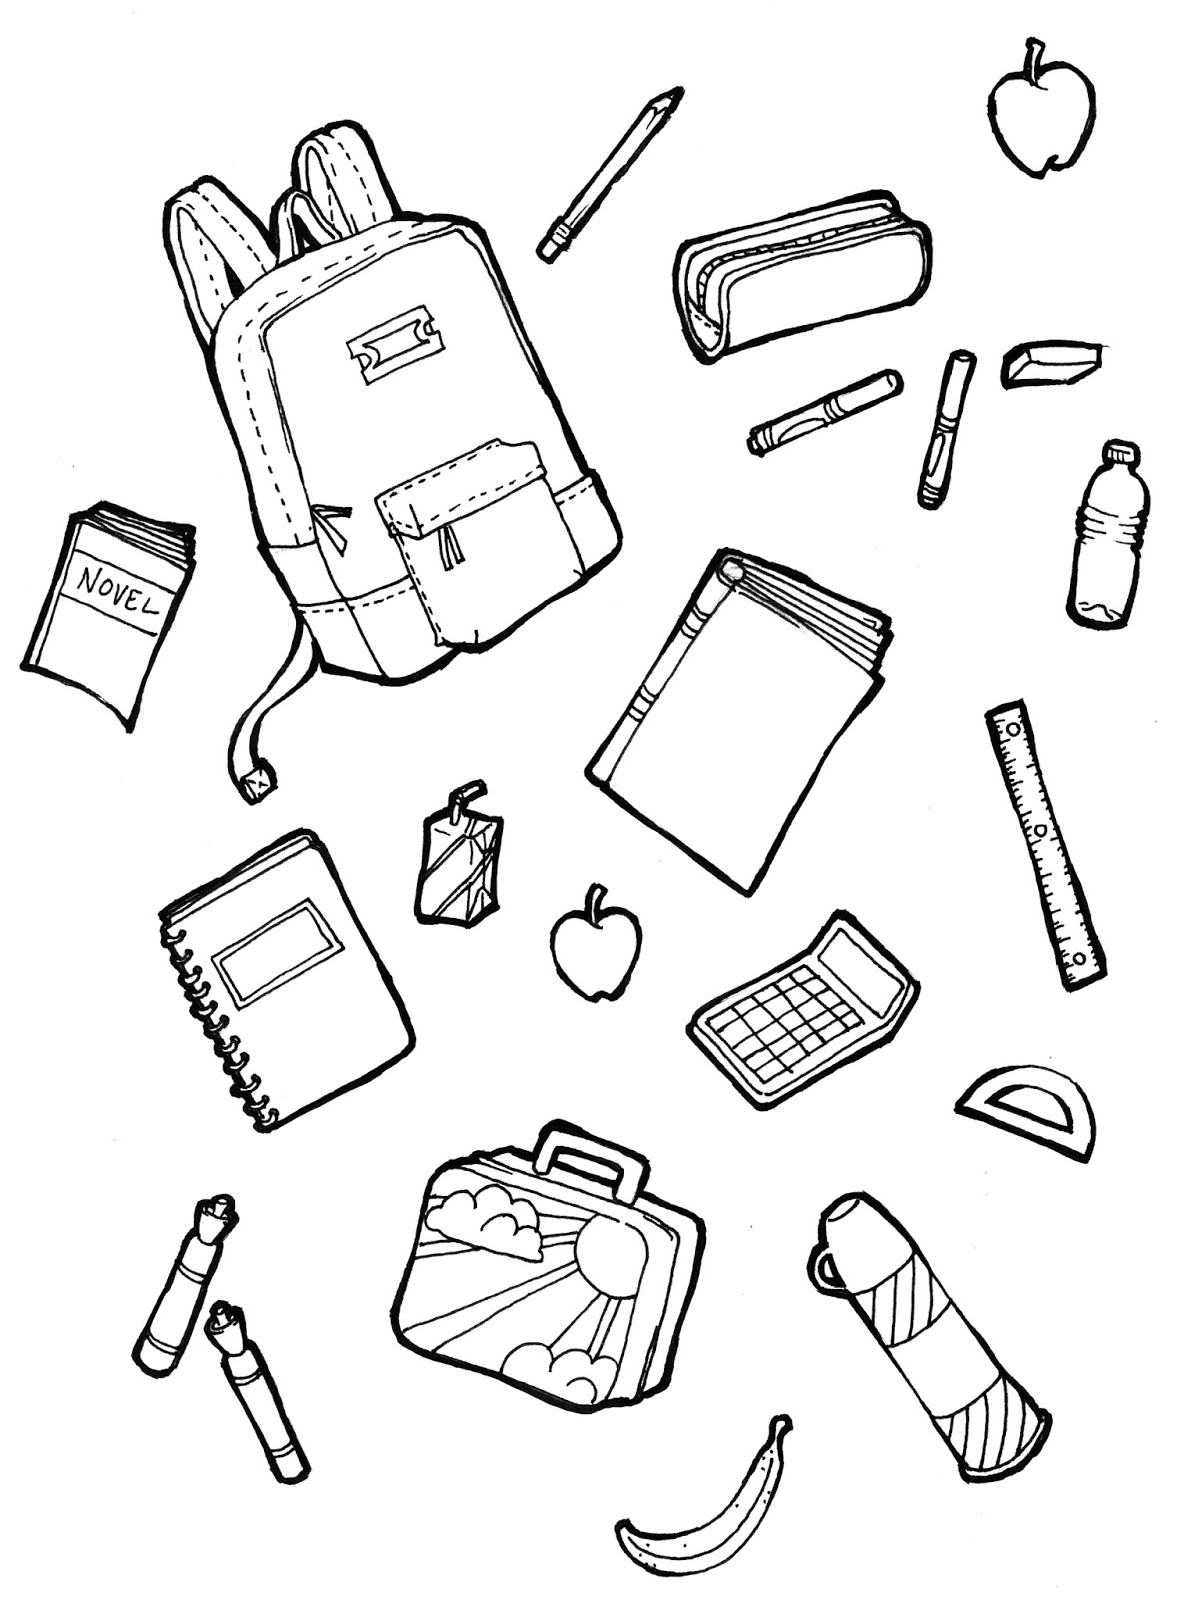 Supplies Drawing At Getdrawings